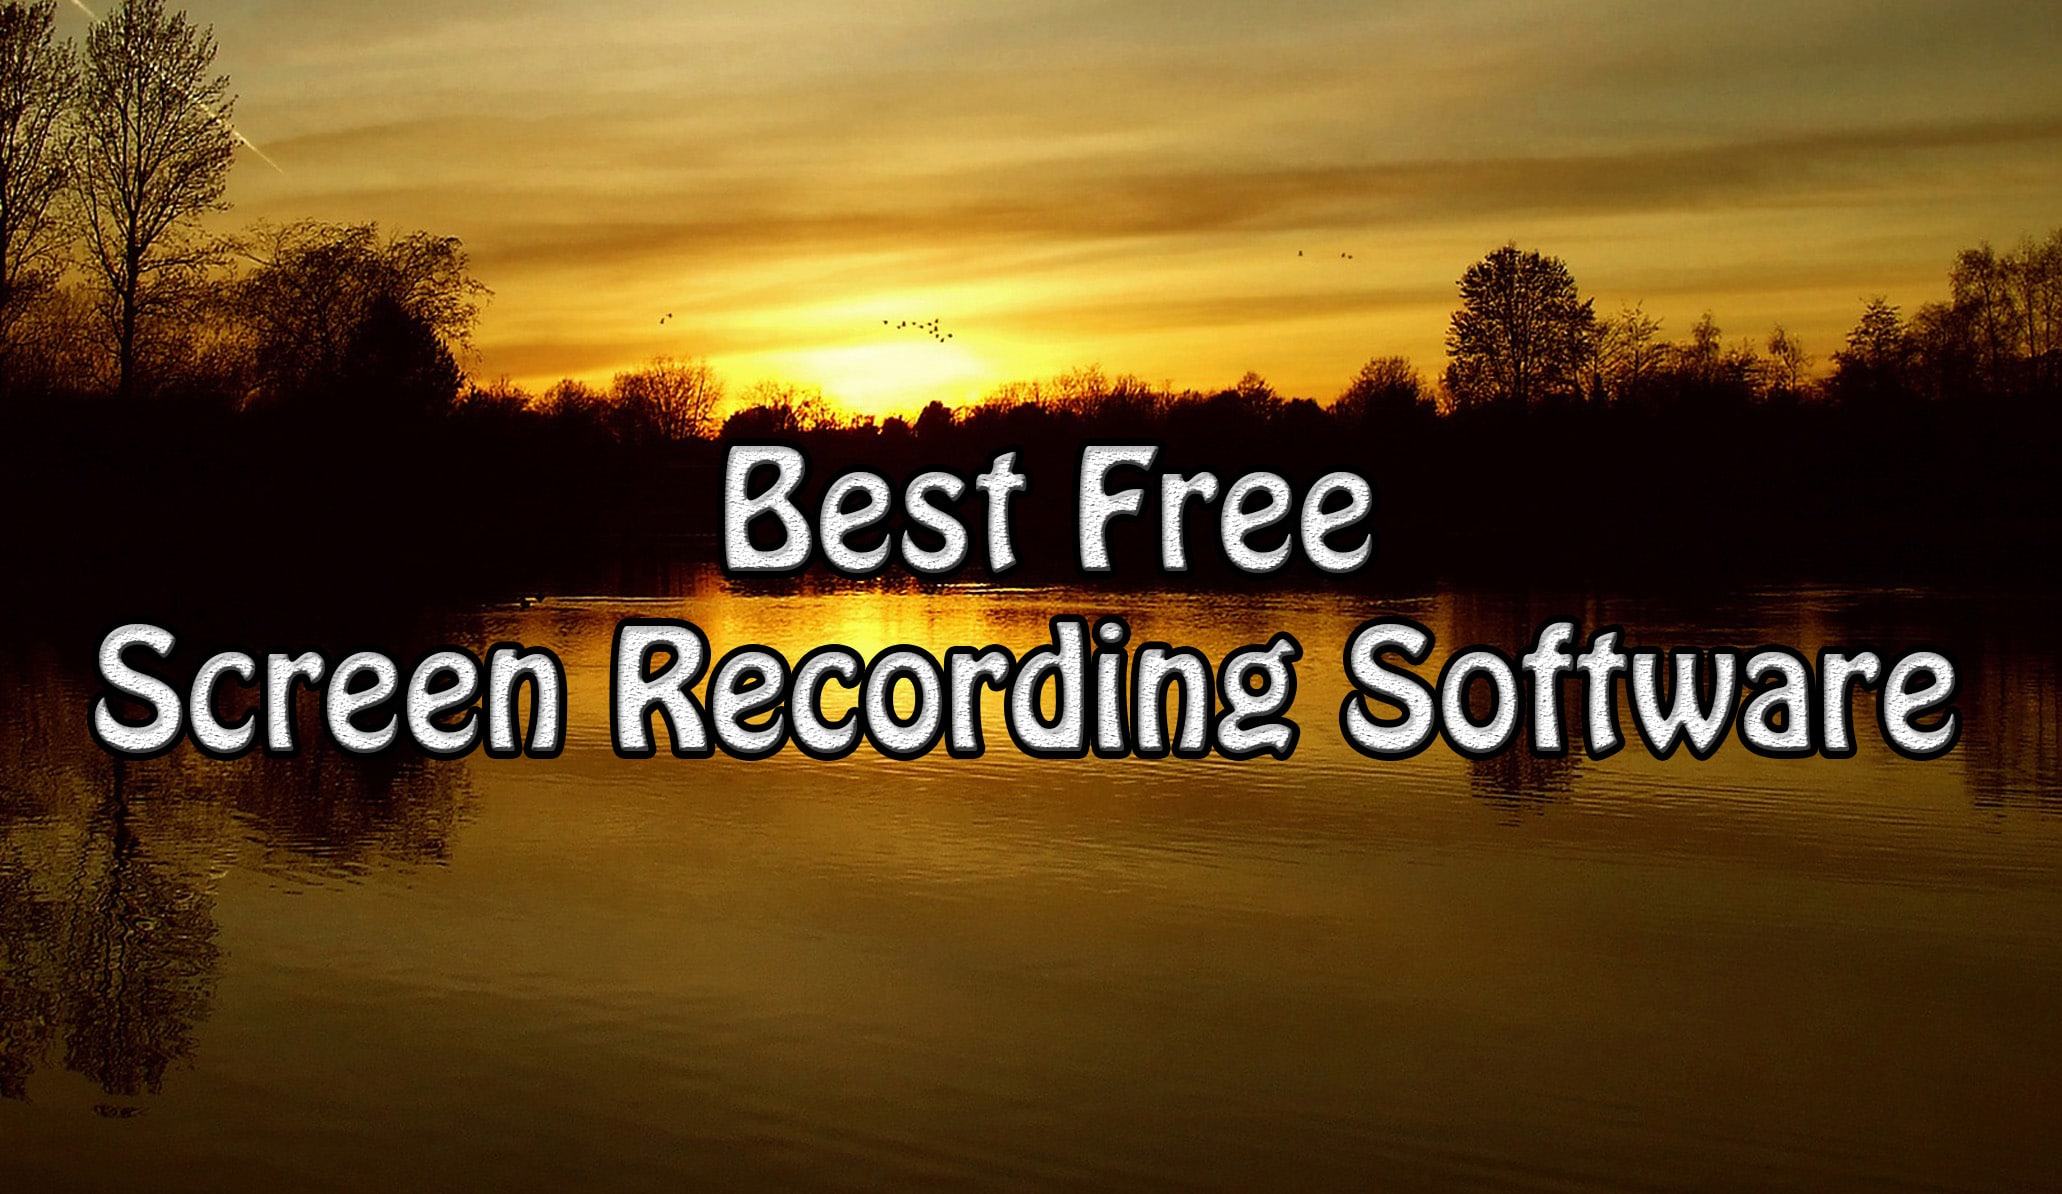 5 Best Free Screen Recording Software Of 2017 - Trick Xpert